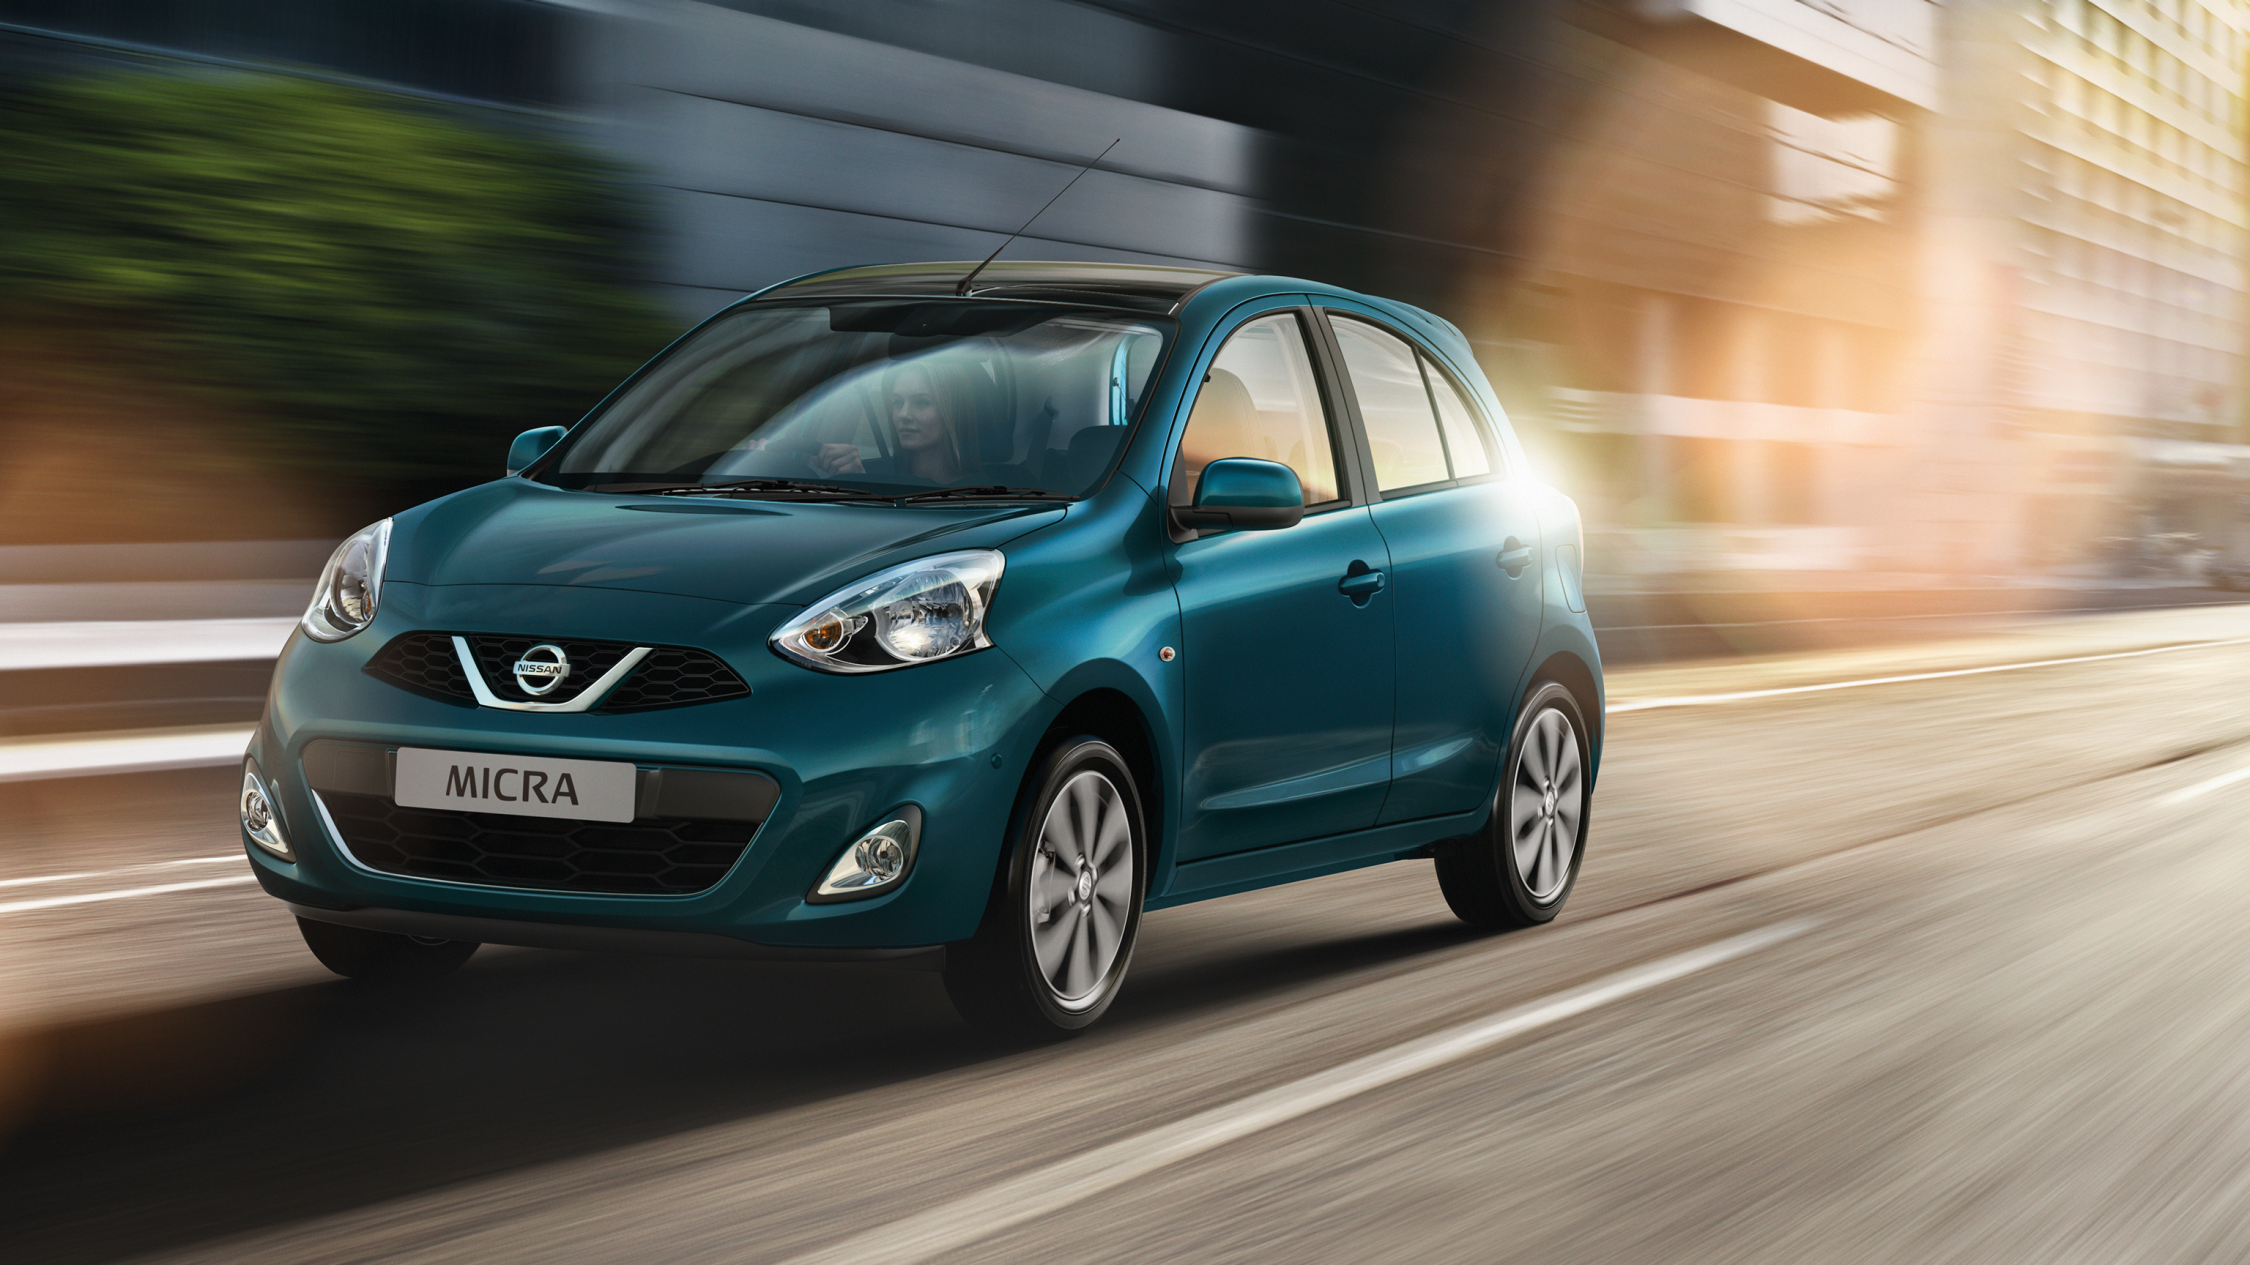 Nissan Micra | City car on the road